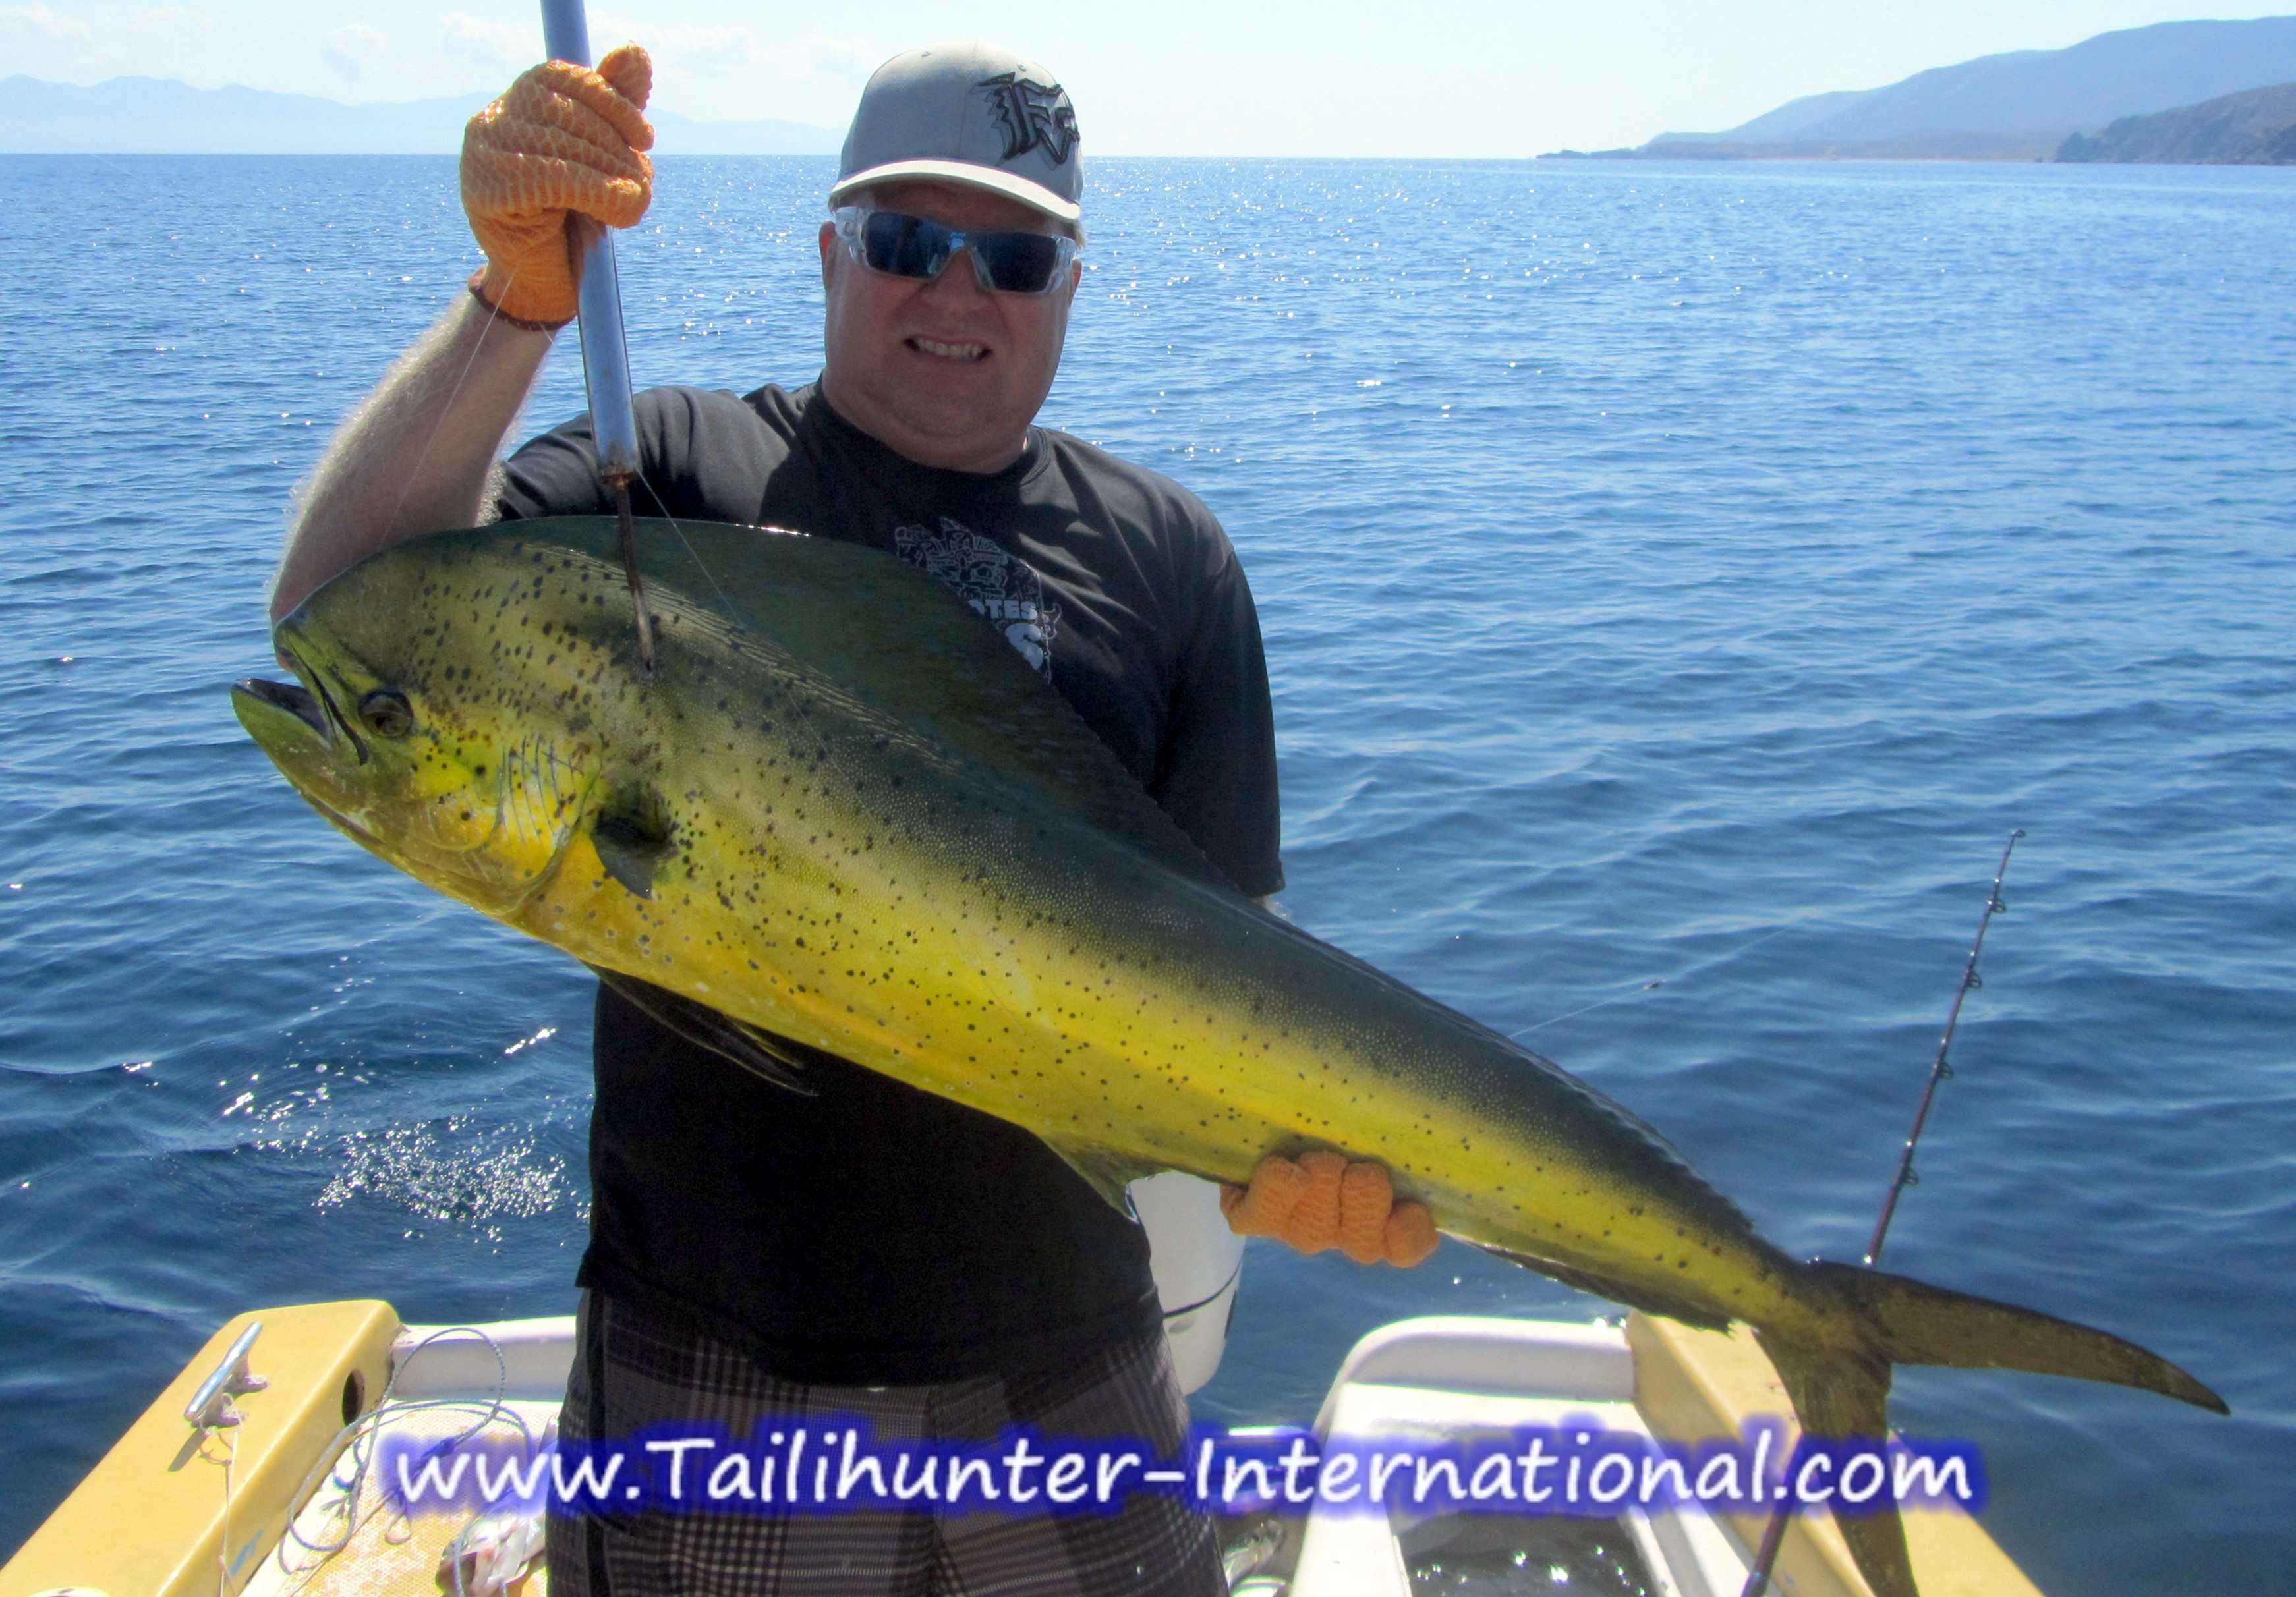 La paz las arenas fishing report from tailhunter for Davey s locker fishing report